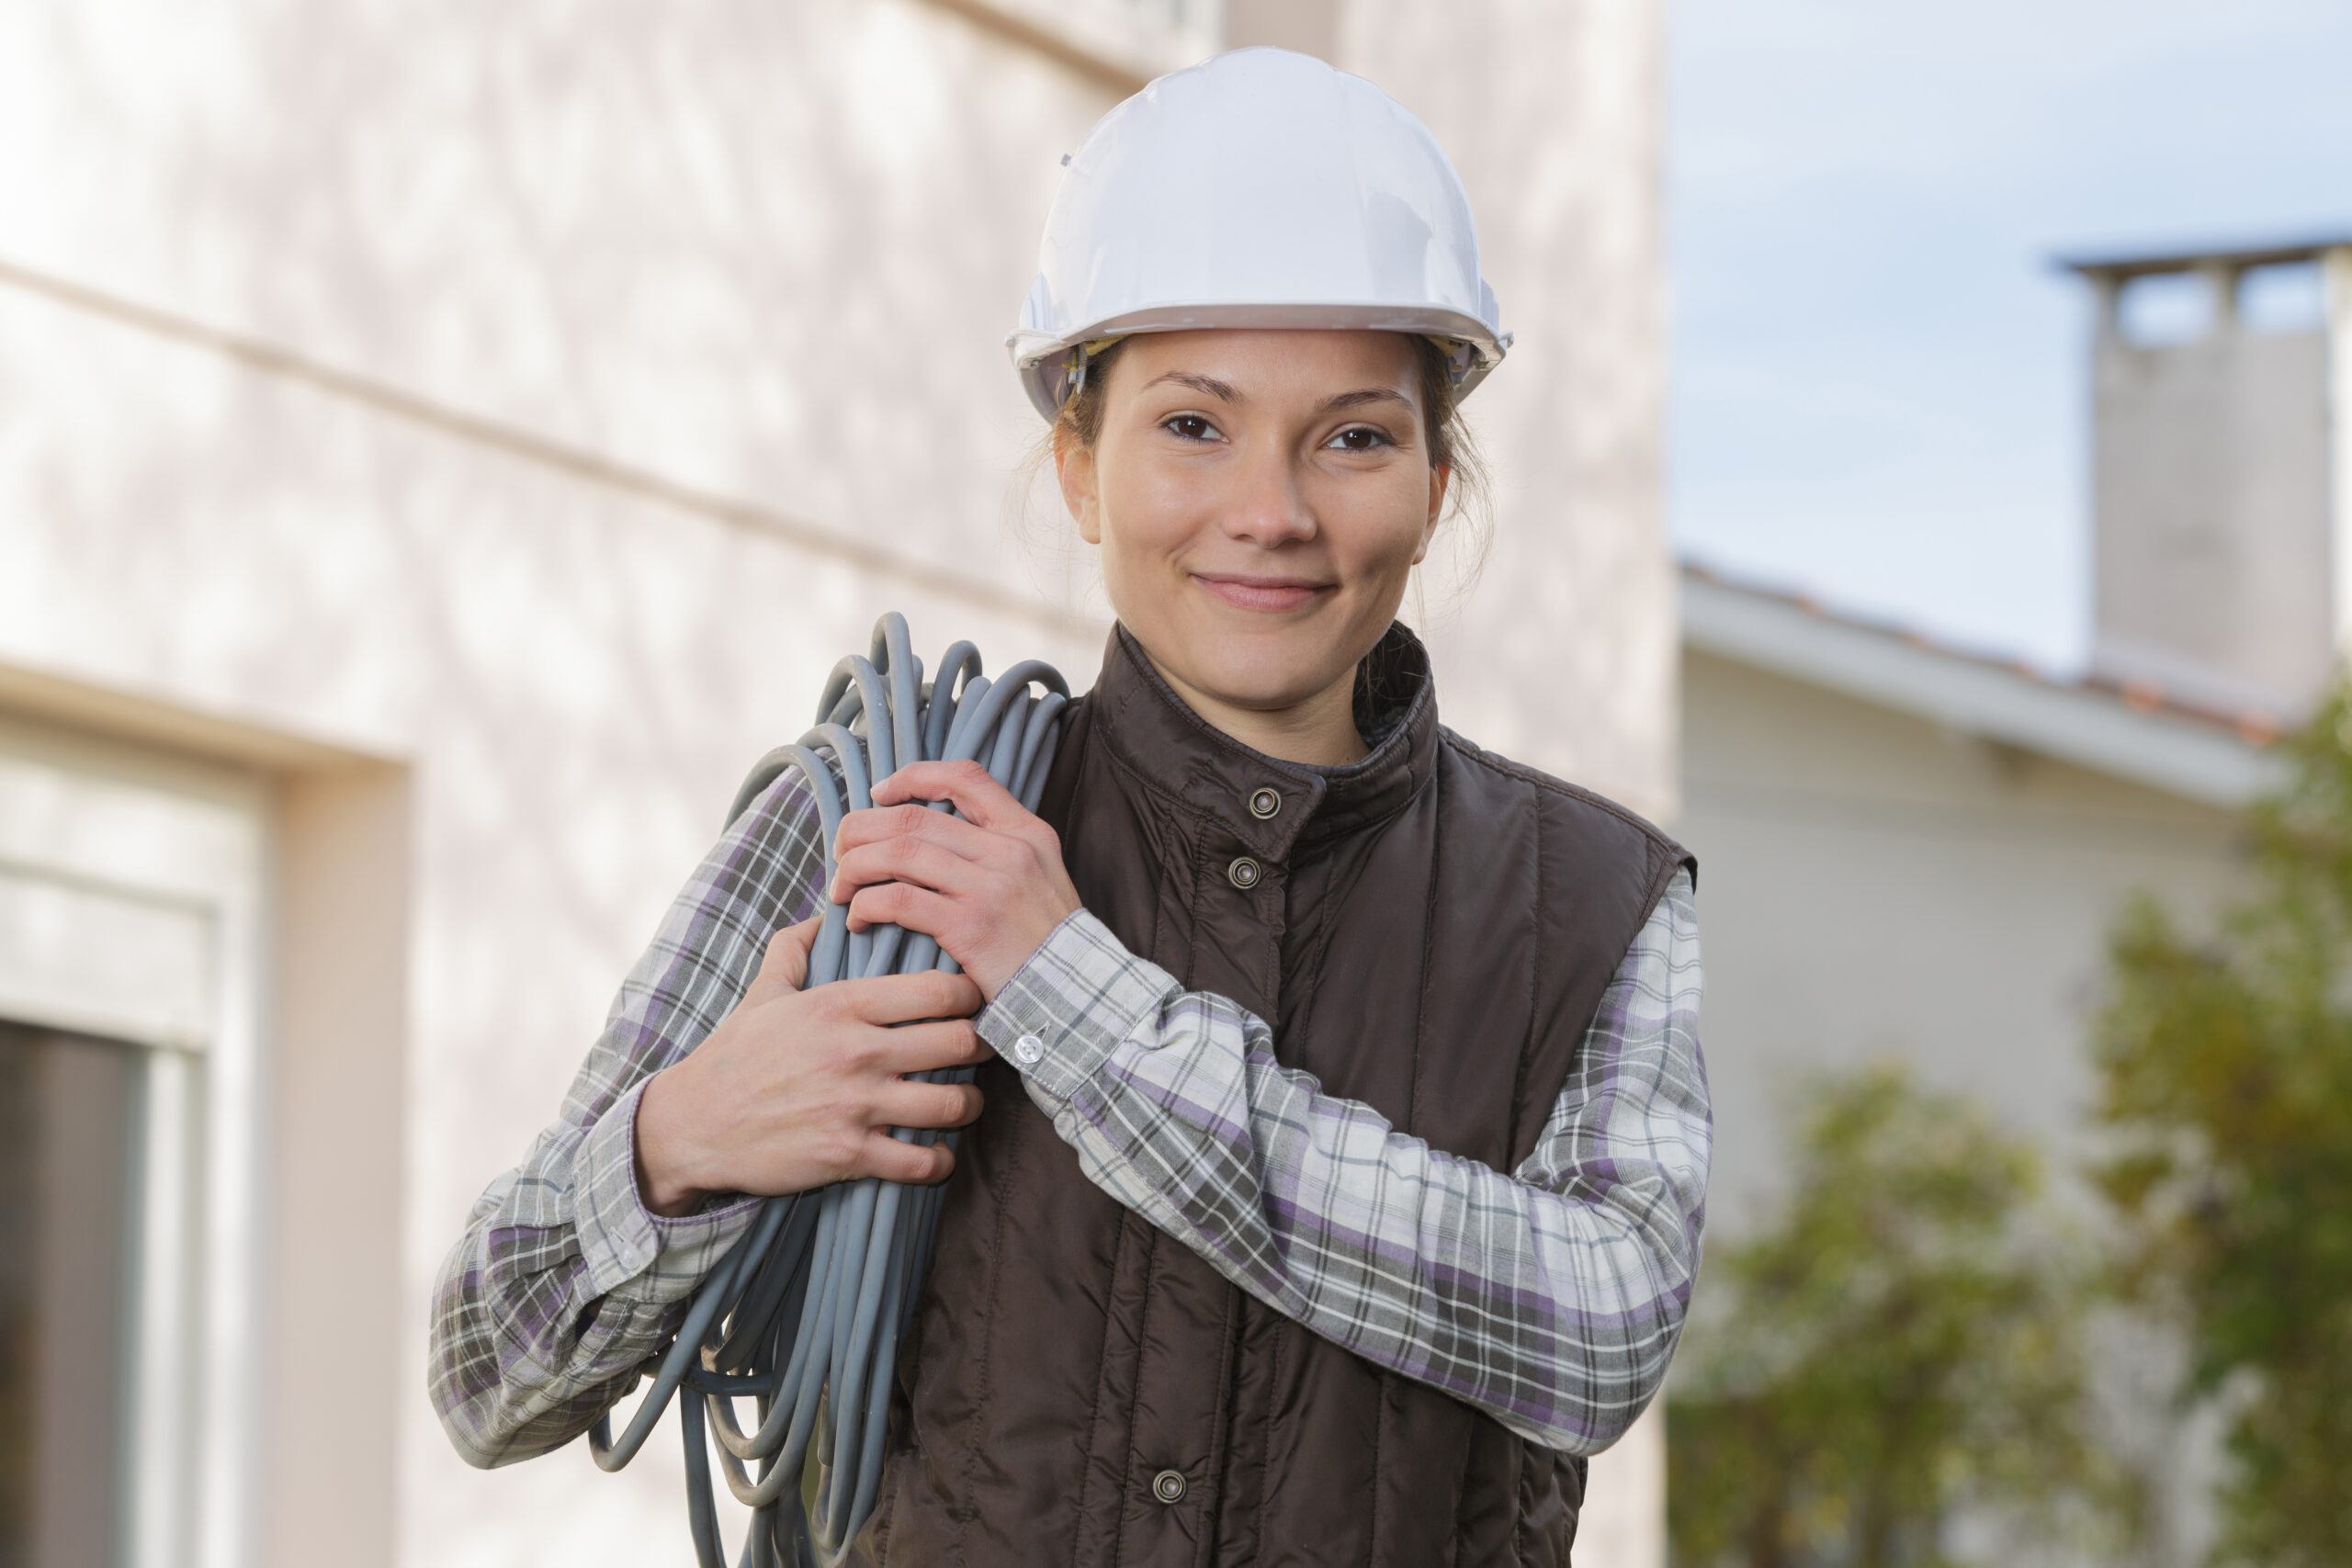 Woman wearing a hard hat helmet